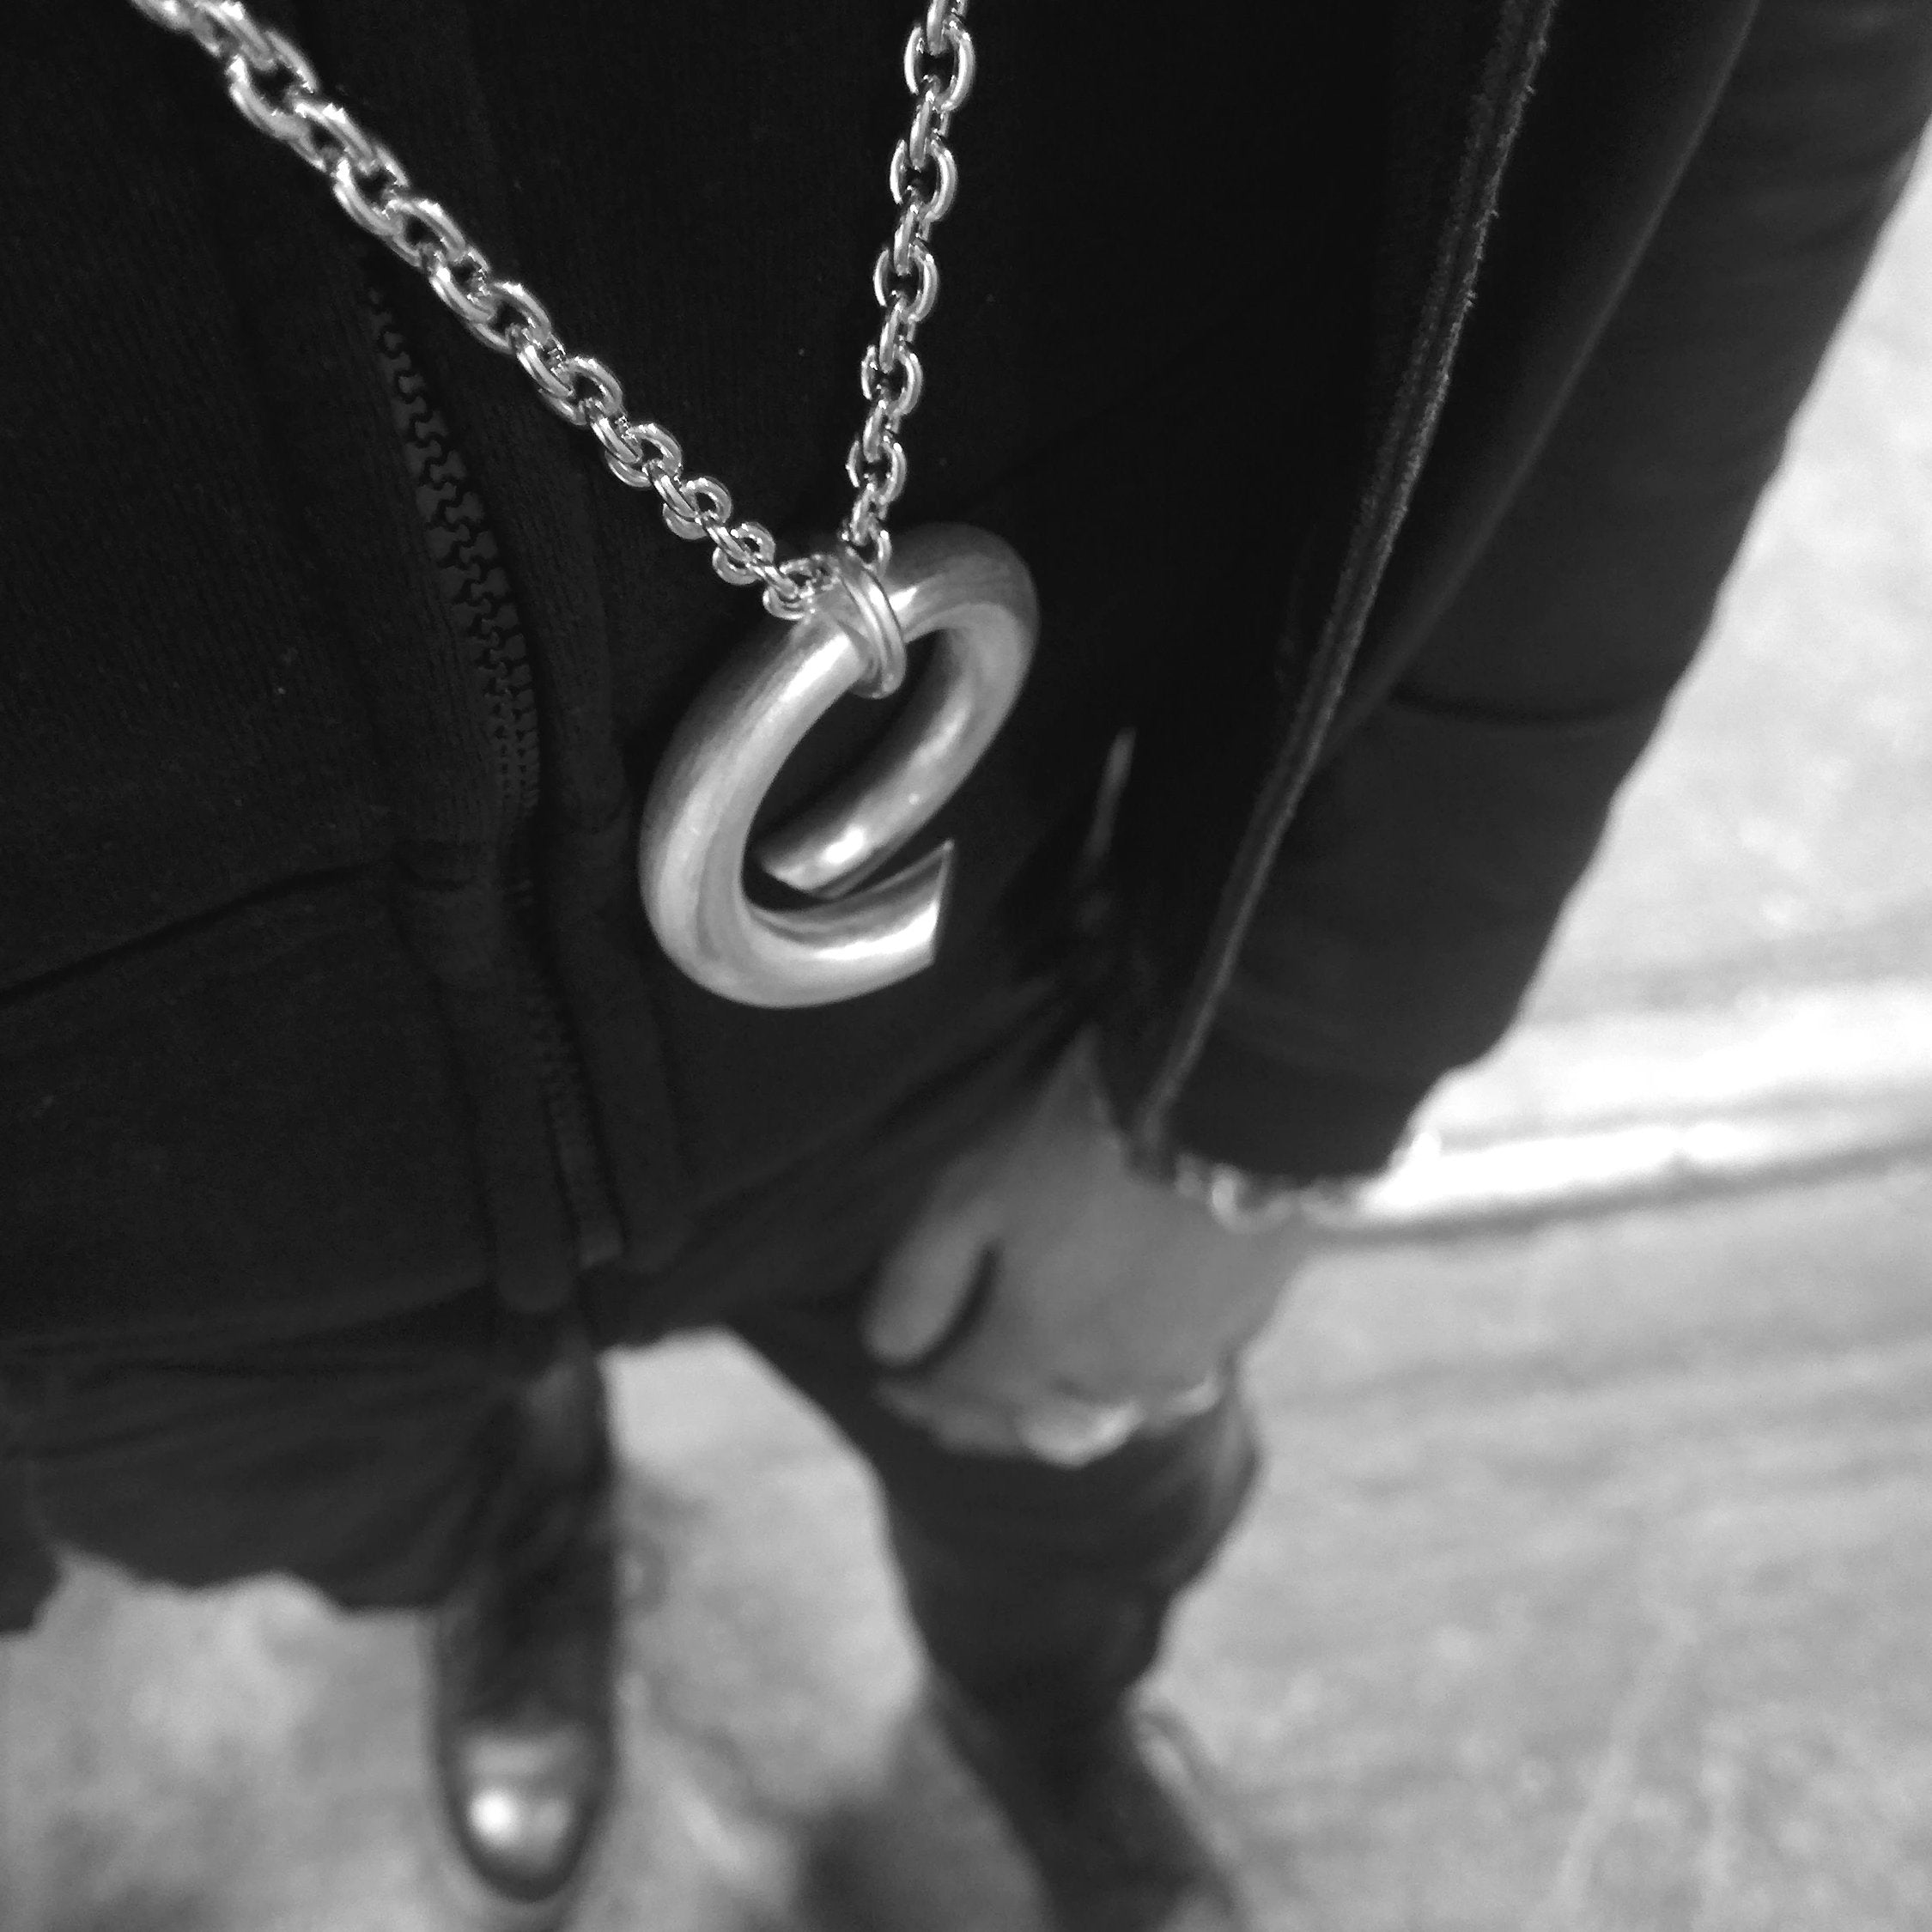 B1 necklace - L